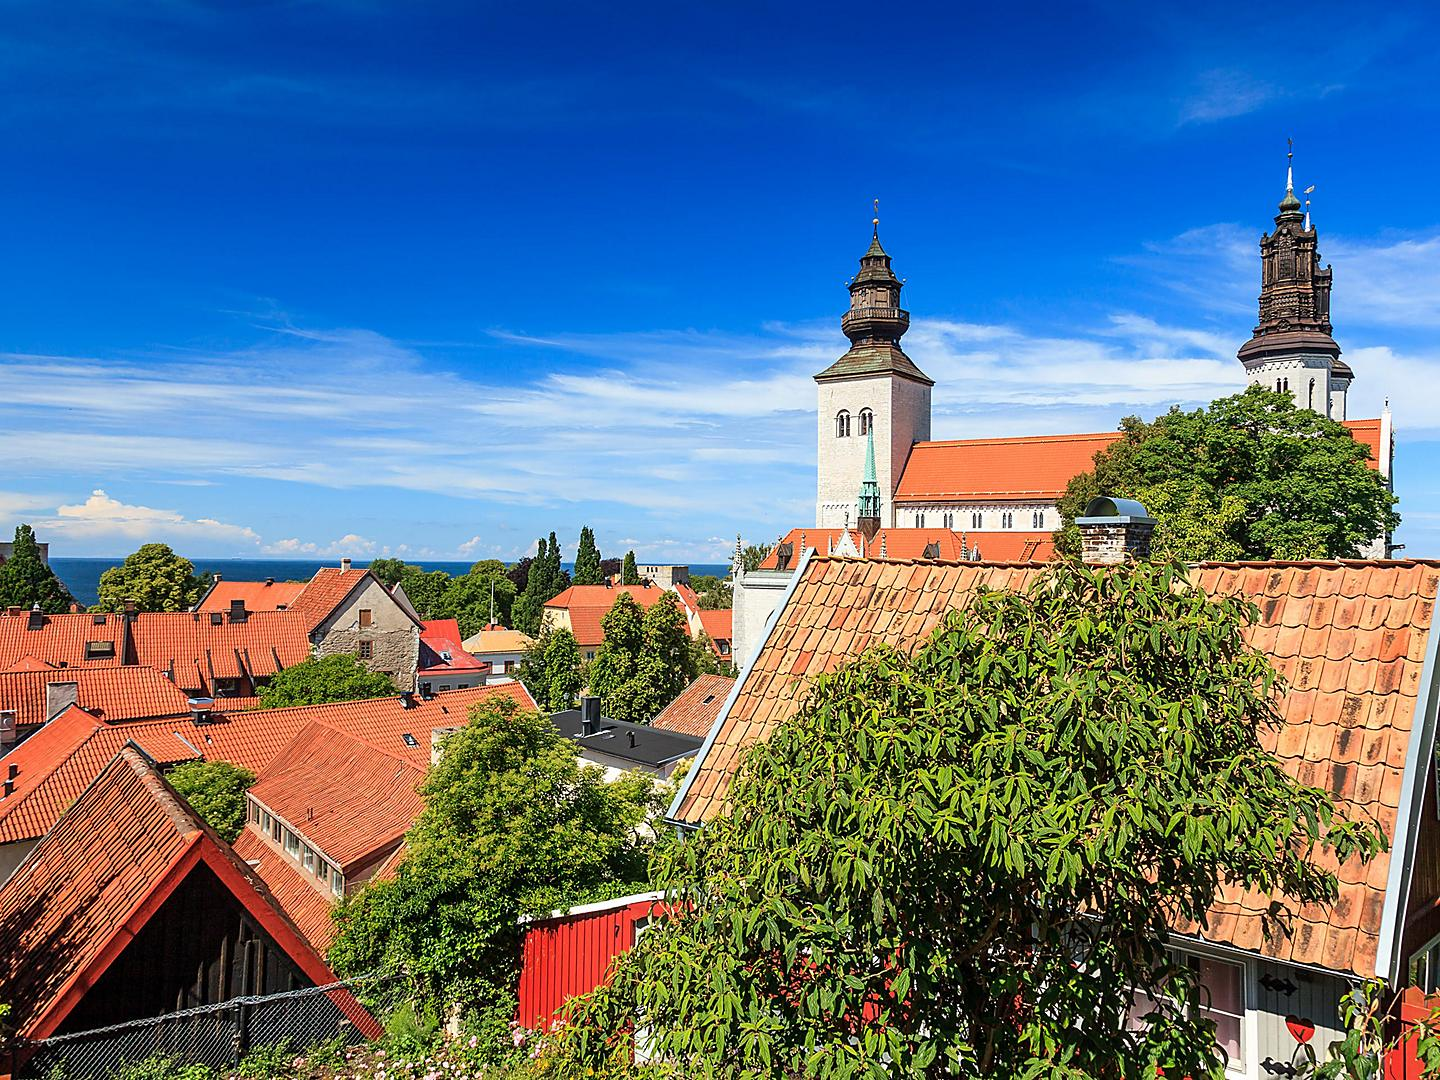 Visby, Sweden, View of the building rooftops